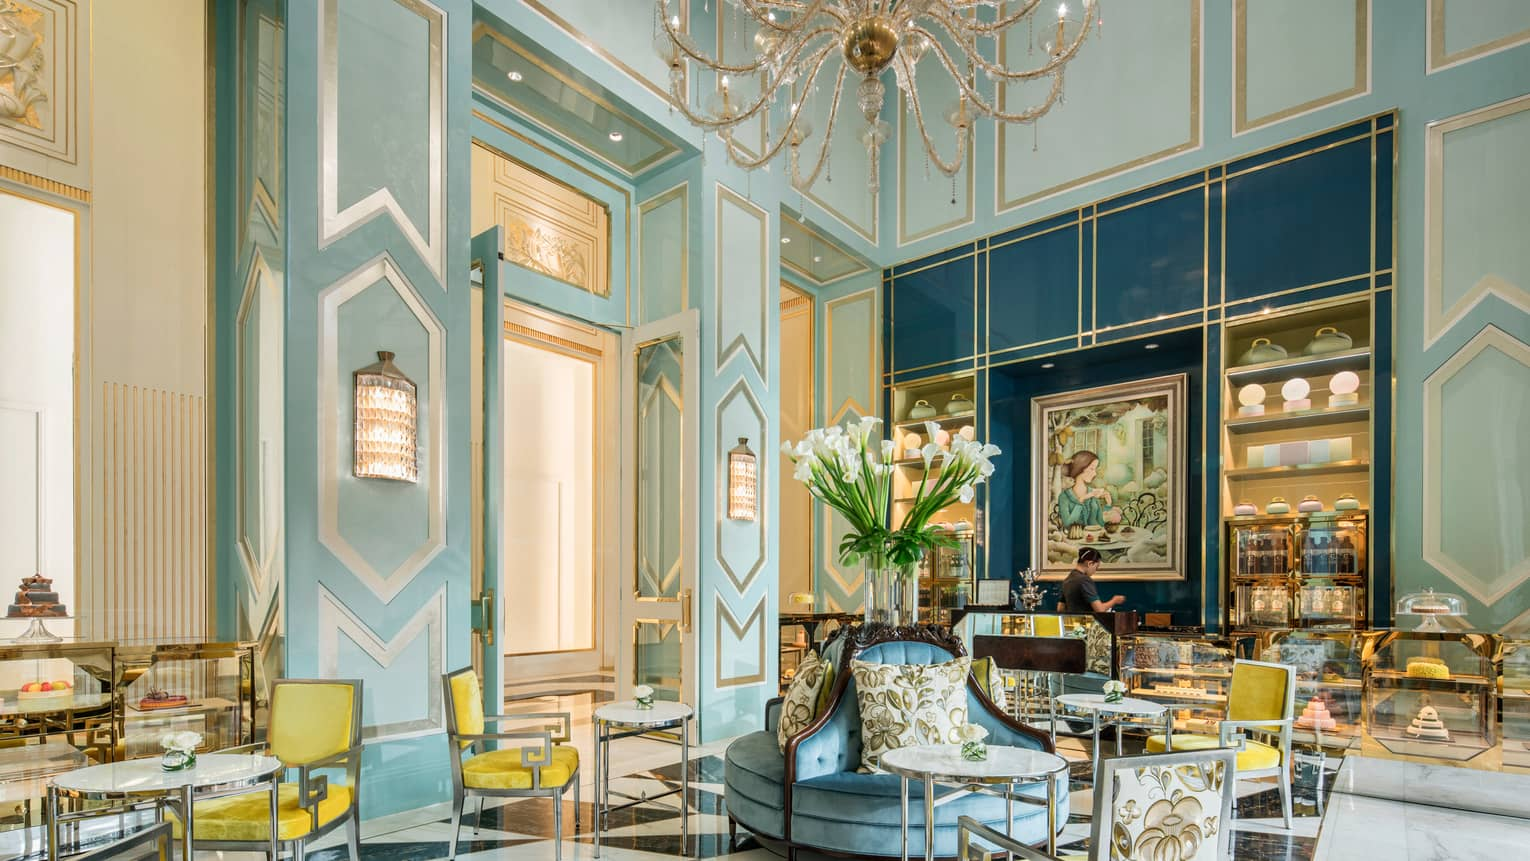 Bright La Patisserie cafe with elegant blue decor, yellow chair, high ceilings, crystal chandelier